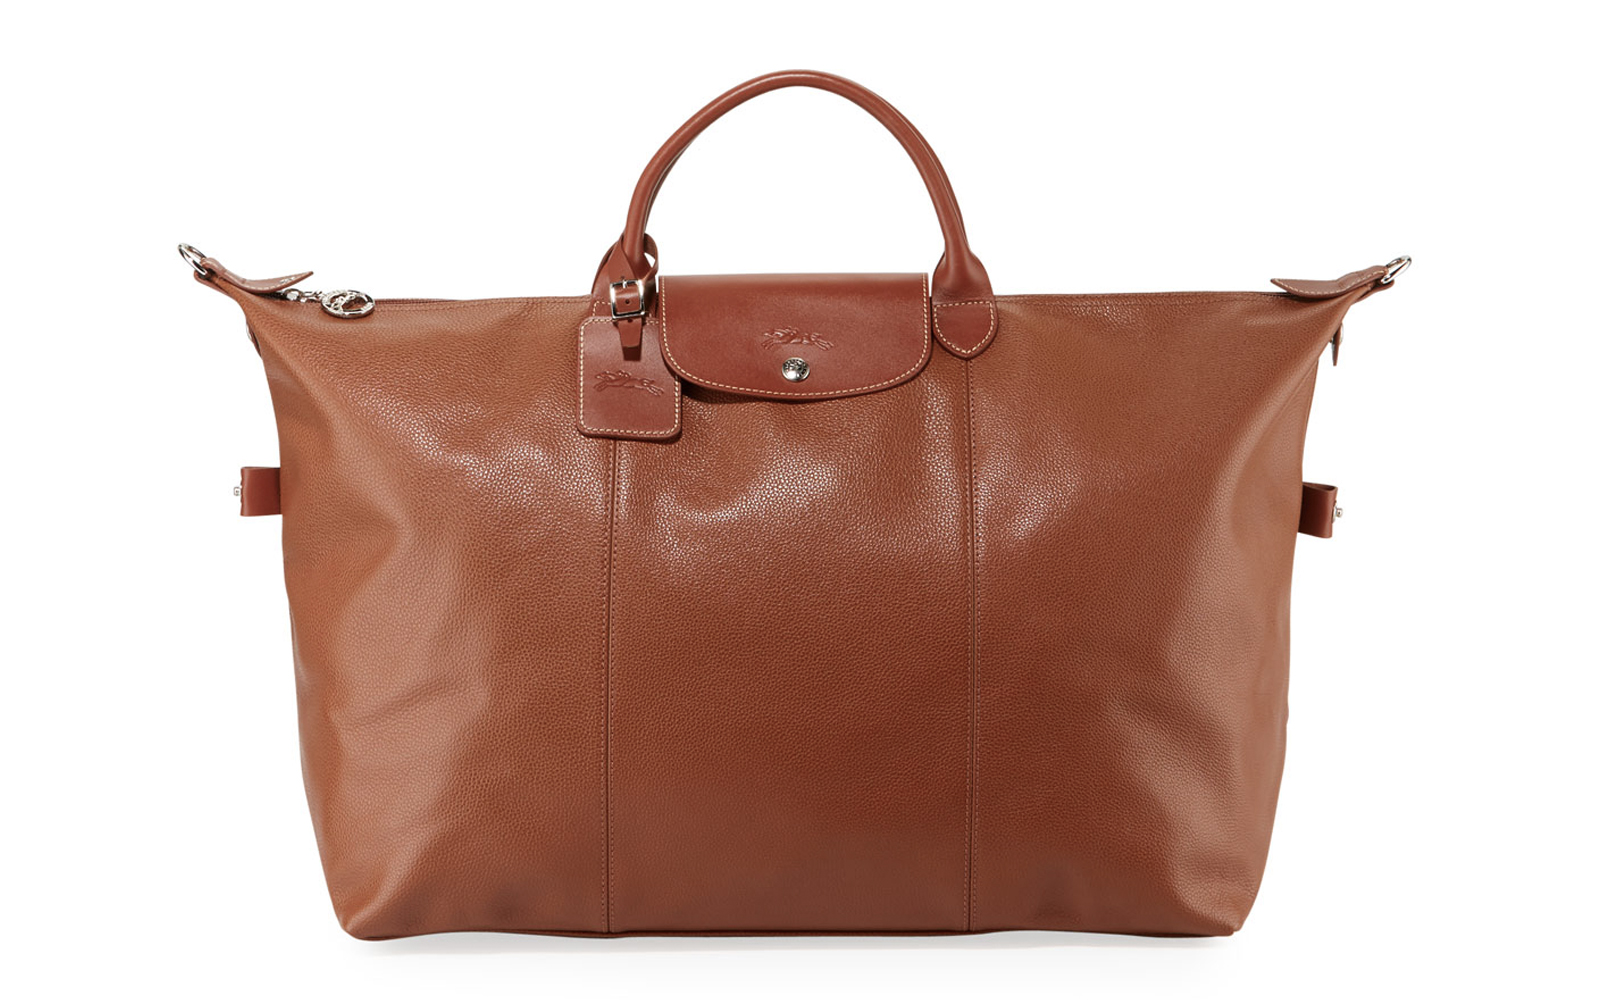 Longchamp s Best Travel Bags Are Majorly on Sale Right Now  ebac57421a2c8